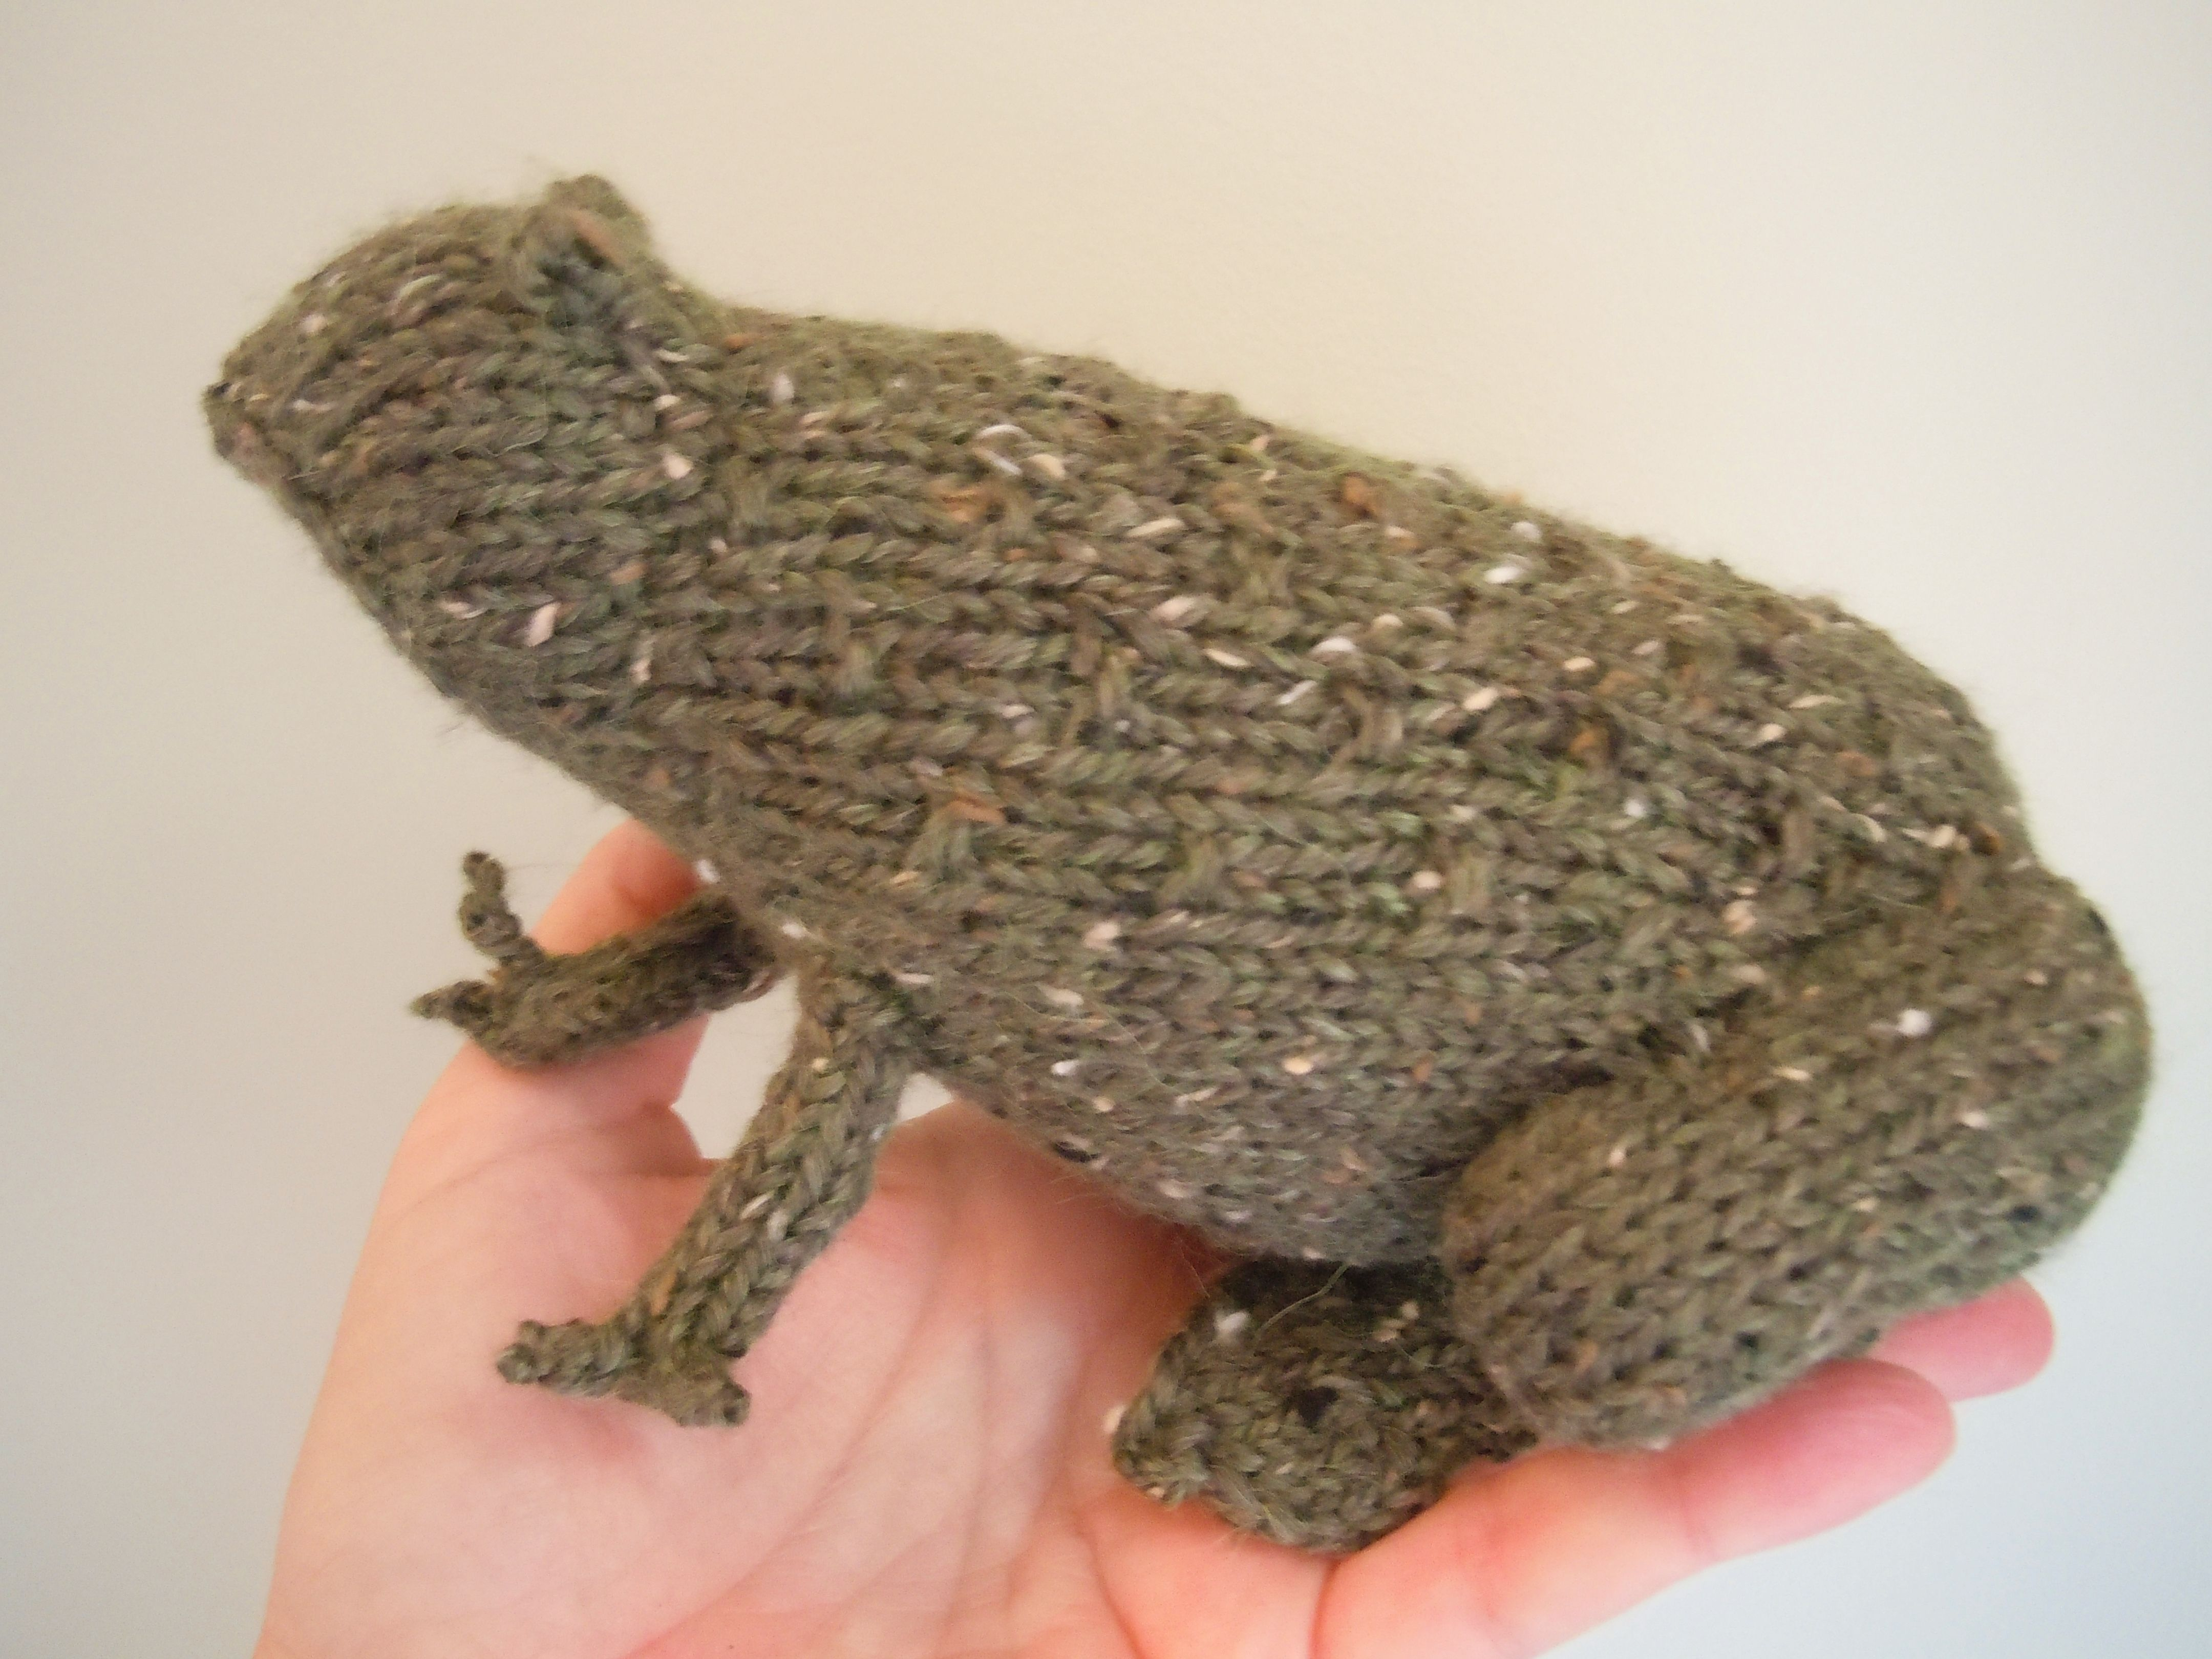 Tweed Toads Pattern - Knitting Patterns and Crochet Patterns from KnitPicks.com